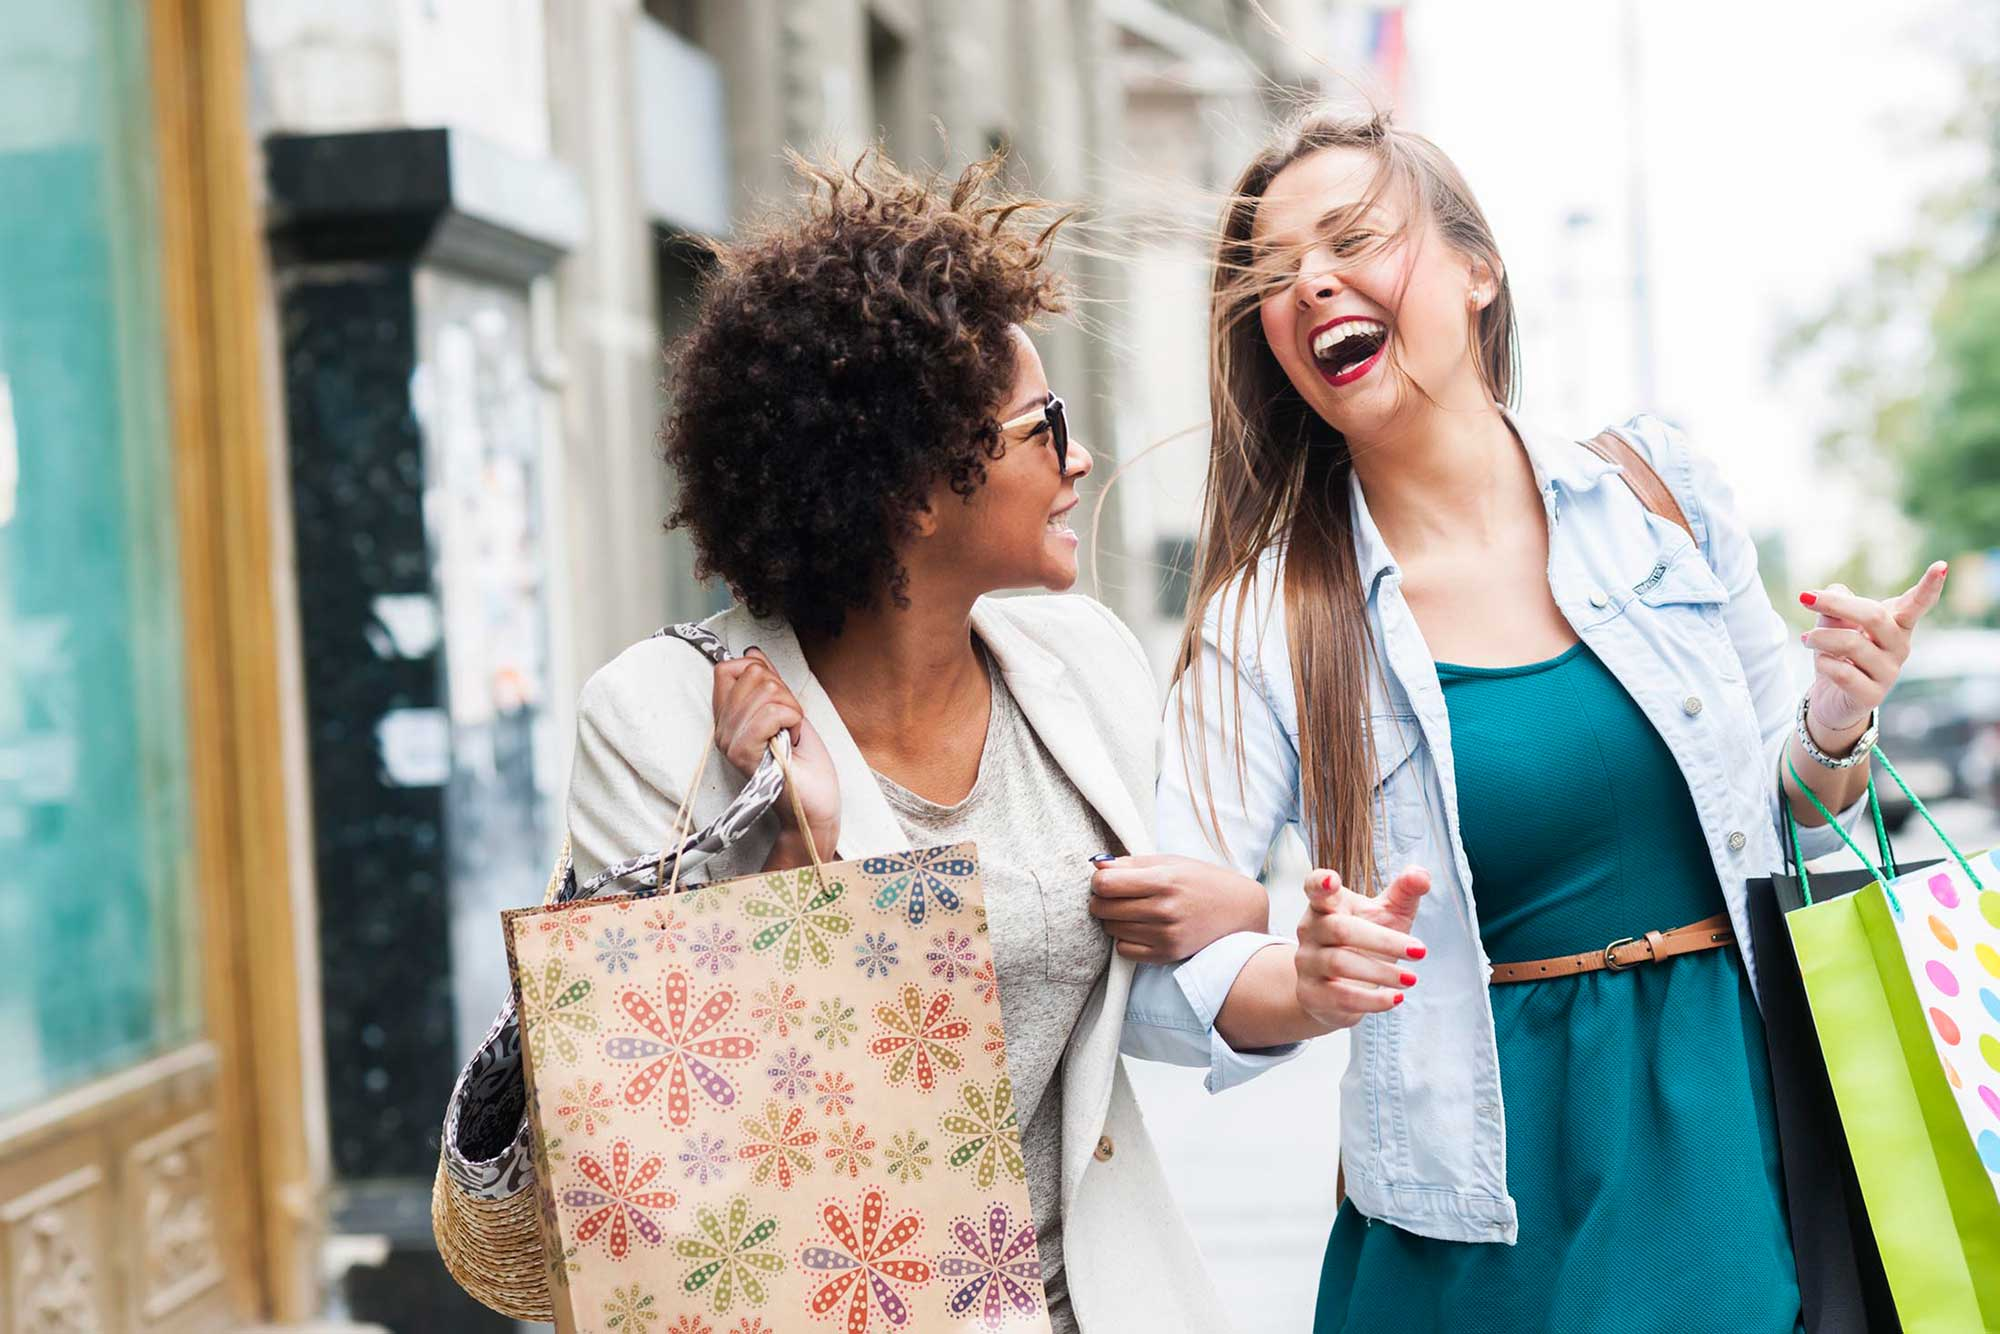 2 women shopping walking down the street laughing